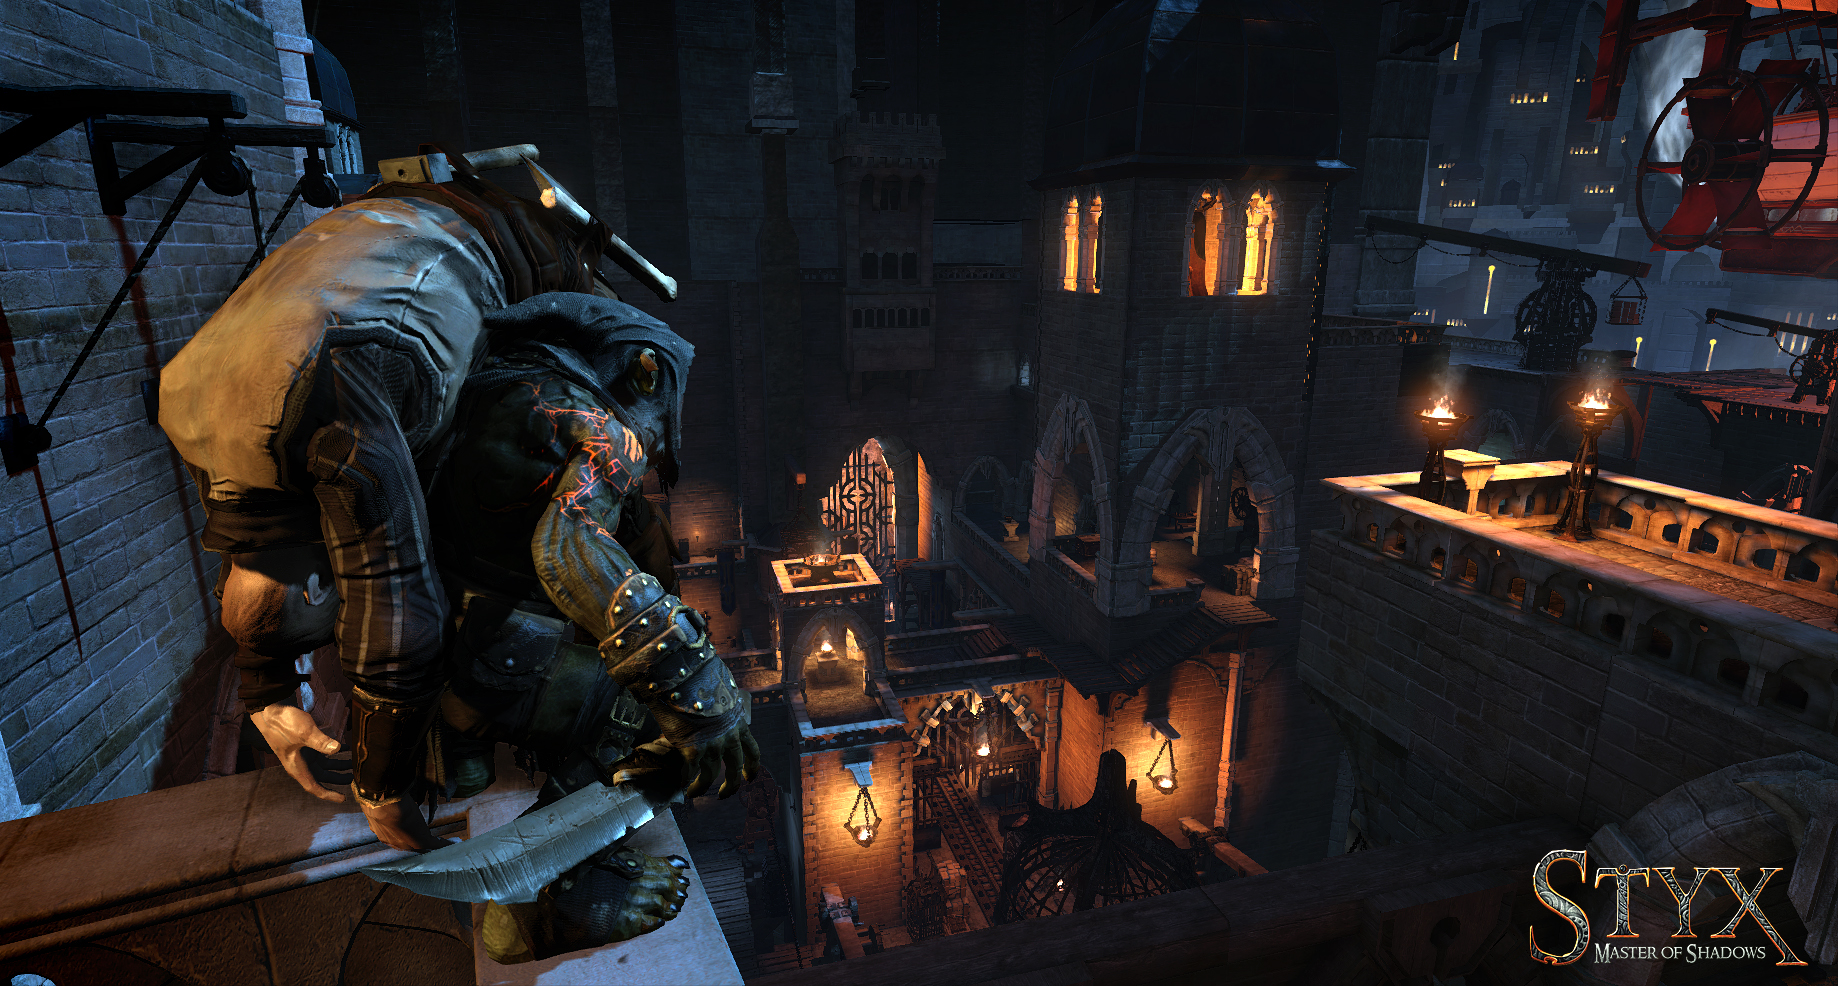 Styx: Master of Shadows Xbox Games with Gold February 2016